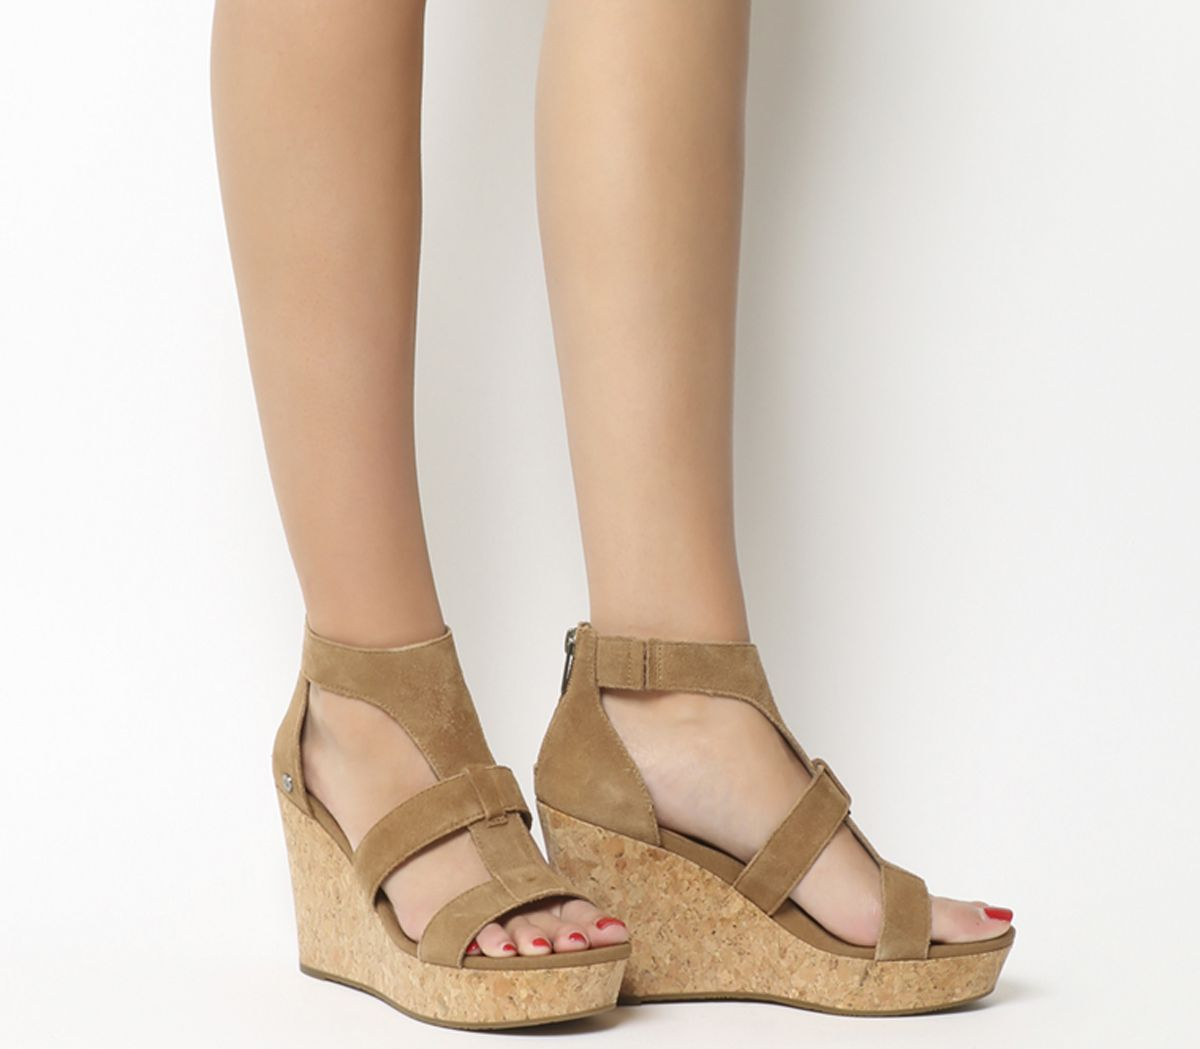 4526130a211 Whitney Wedges